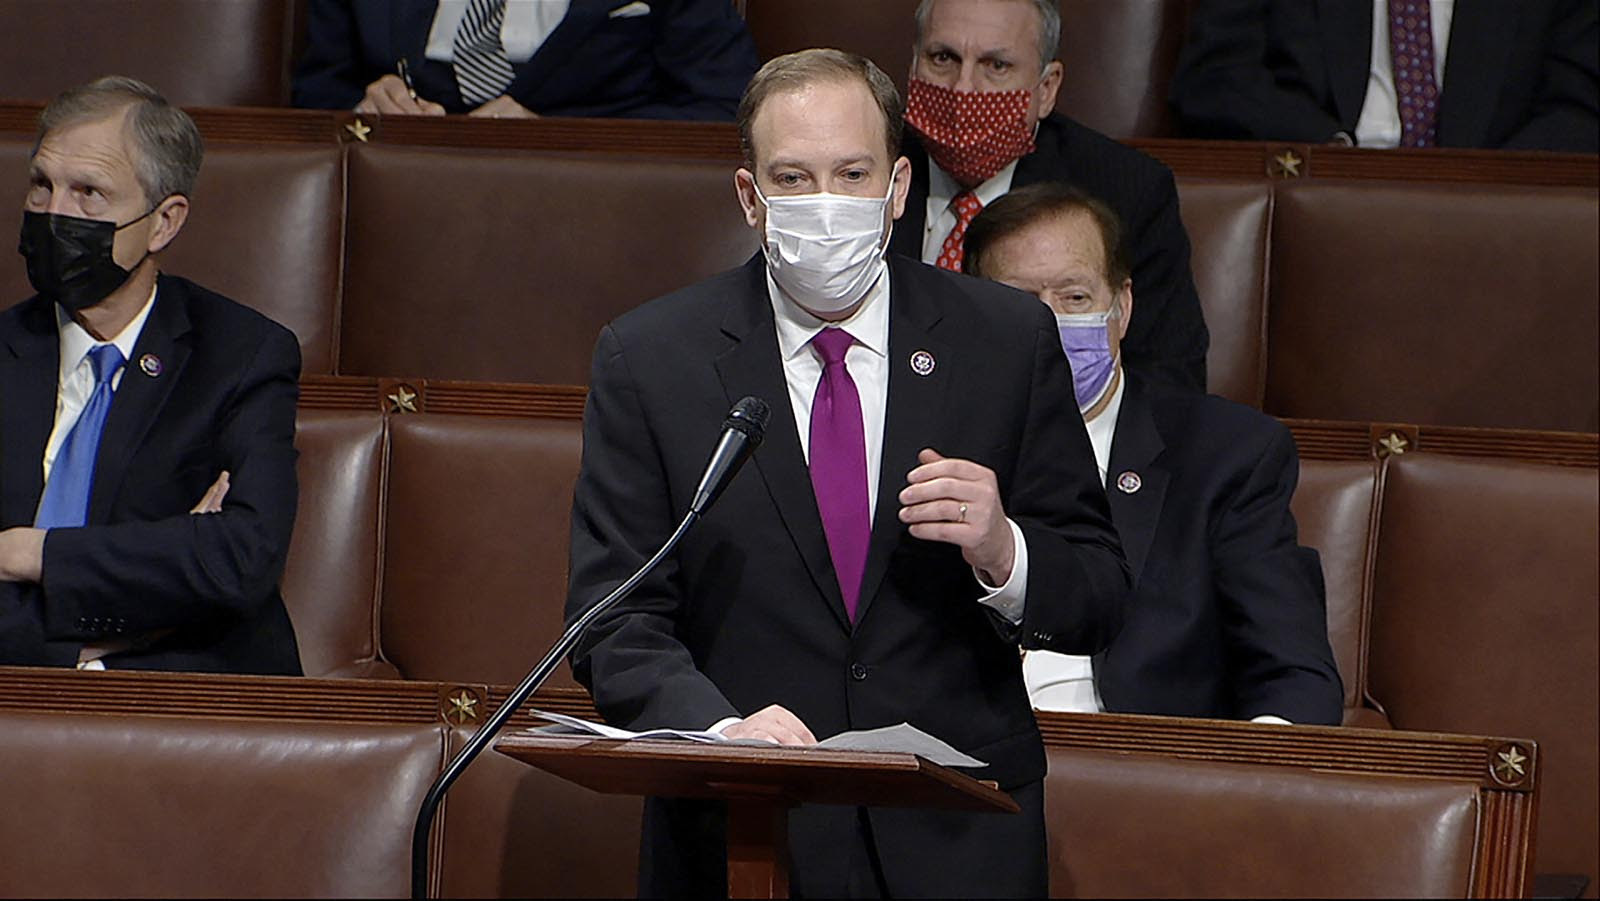 U.S. Representative Lee Zeldin speaking on the floor of the House of Representatives before voting against accepting the results of the Electoral College on January 6.